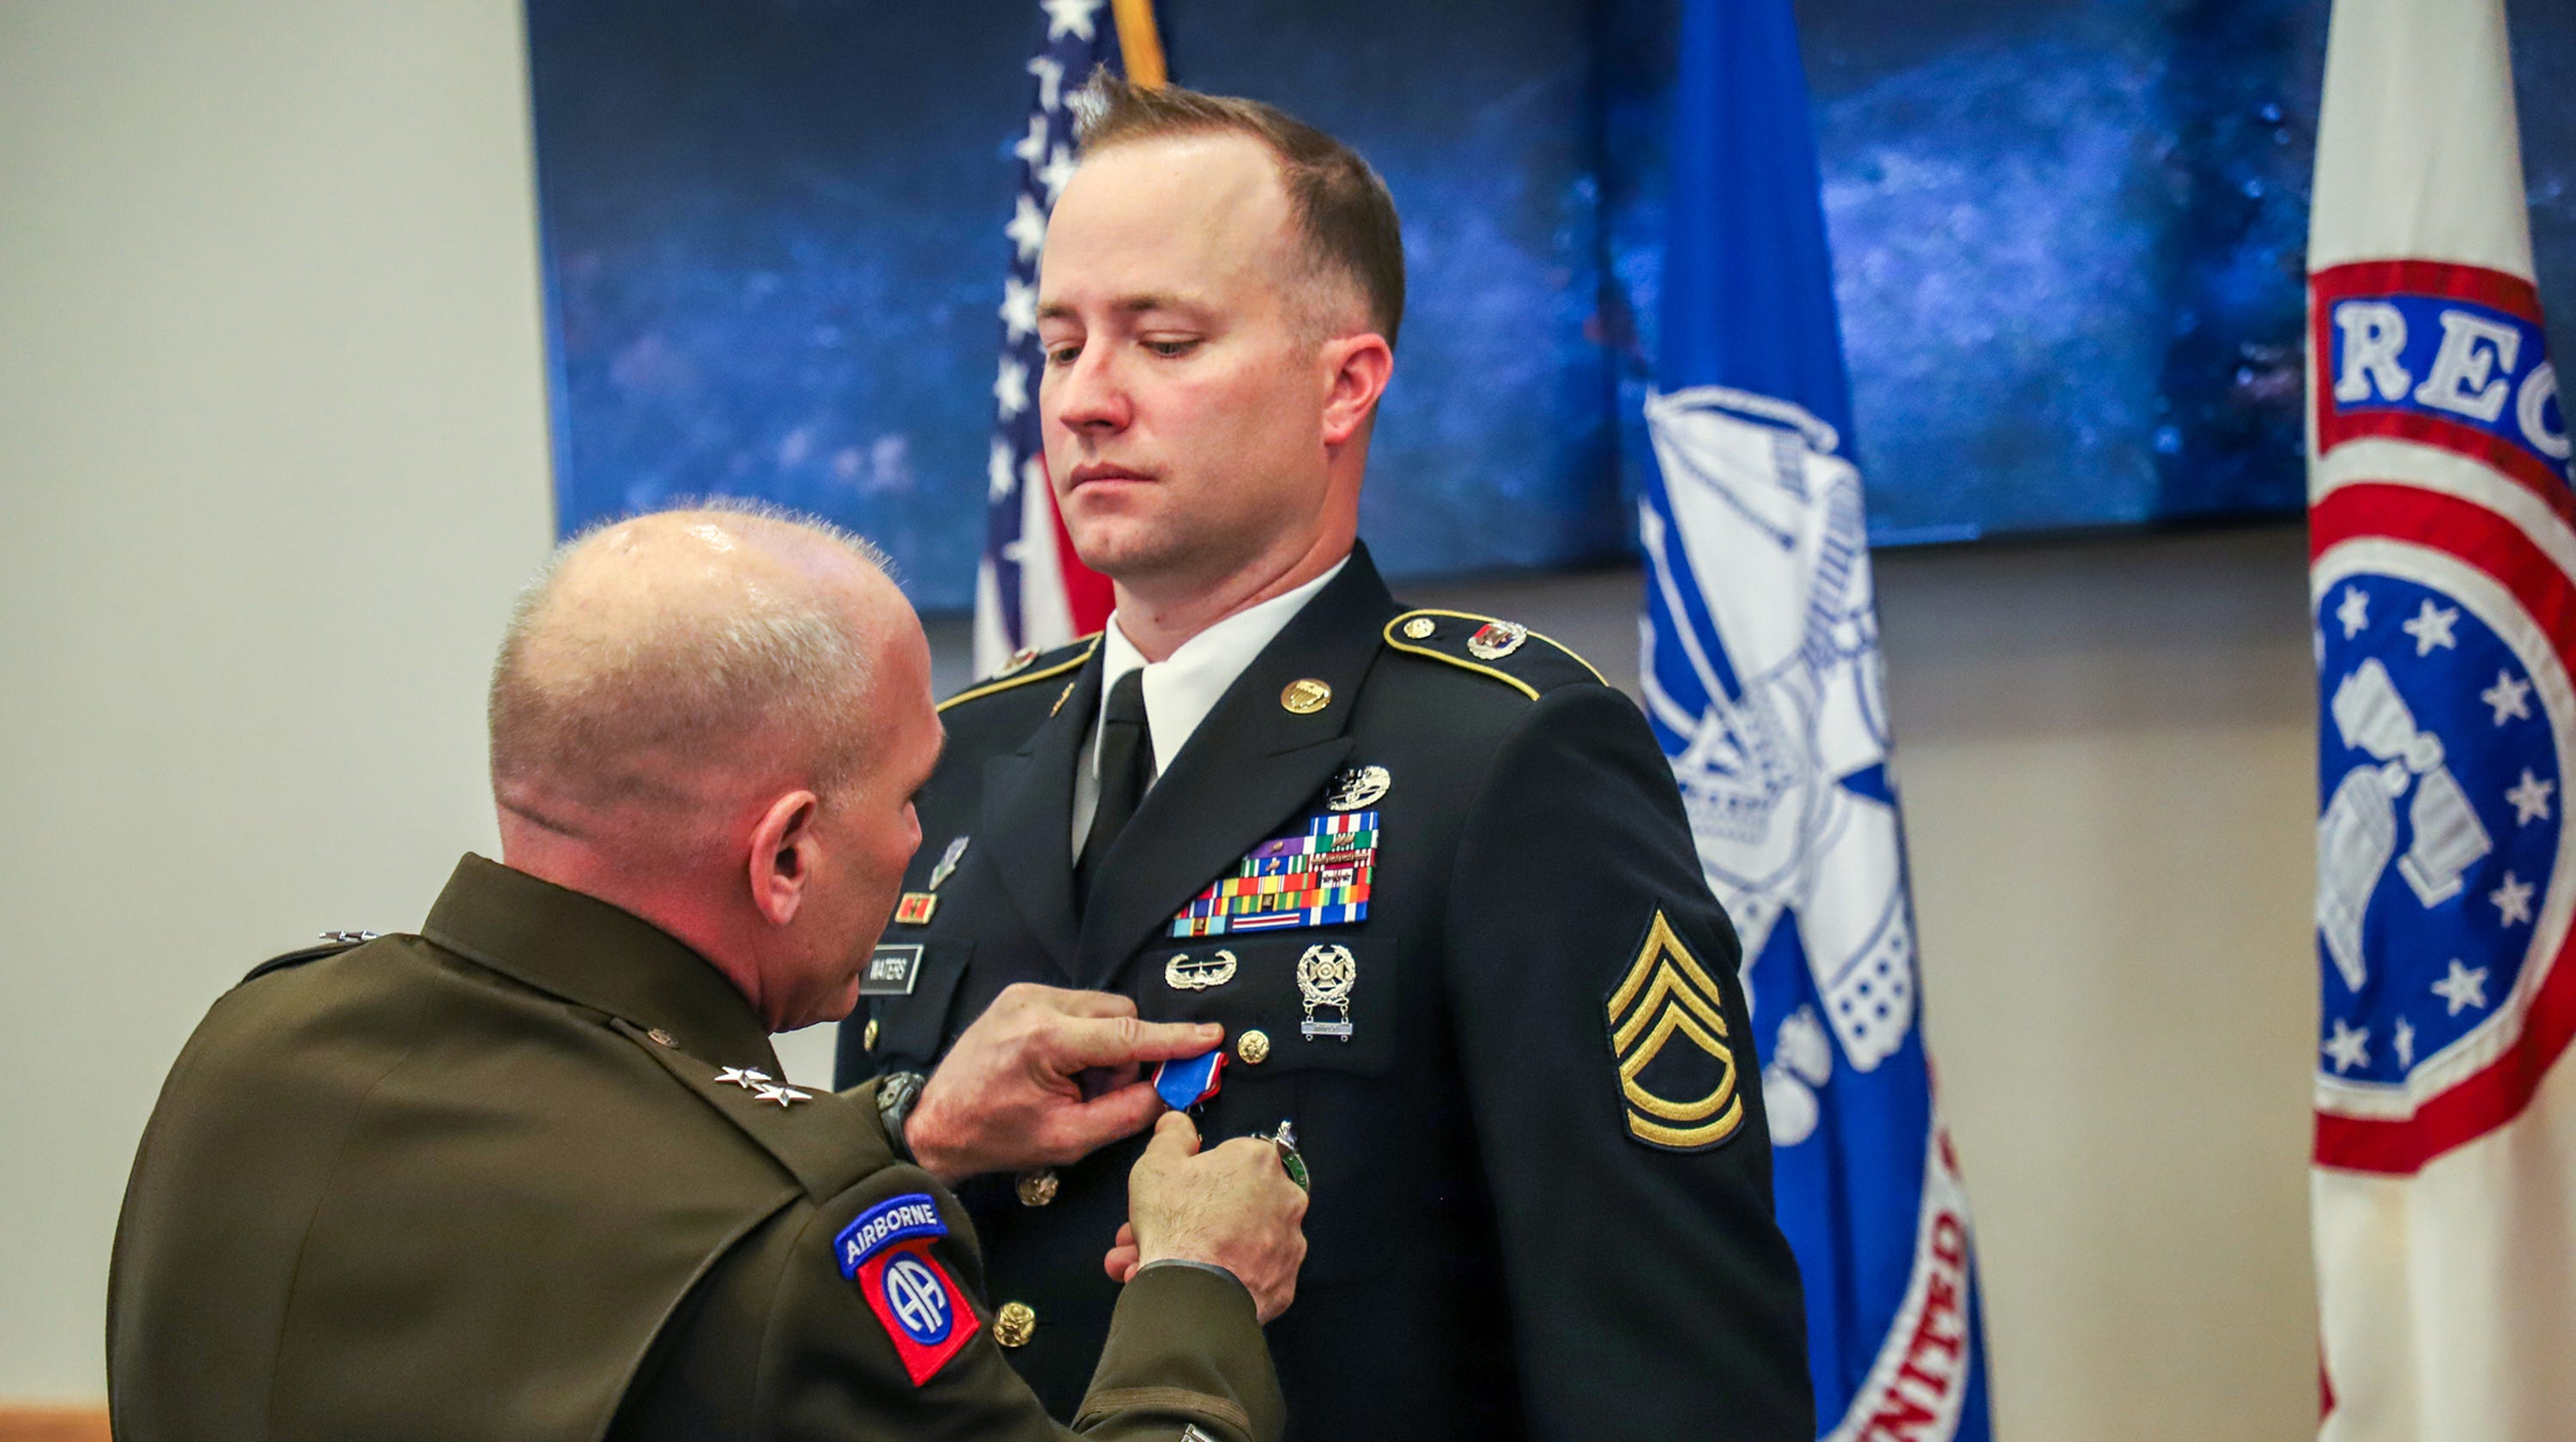 Army Medic Gregory Waters Awarded Distinguished Service Cross